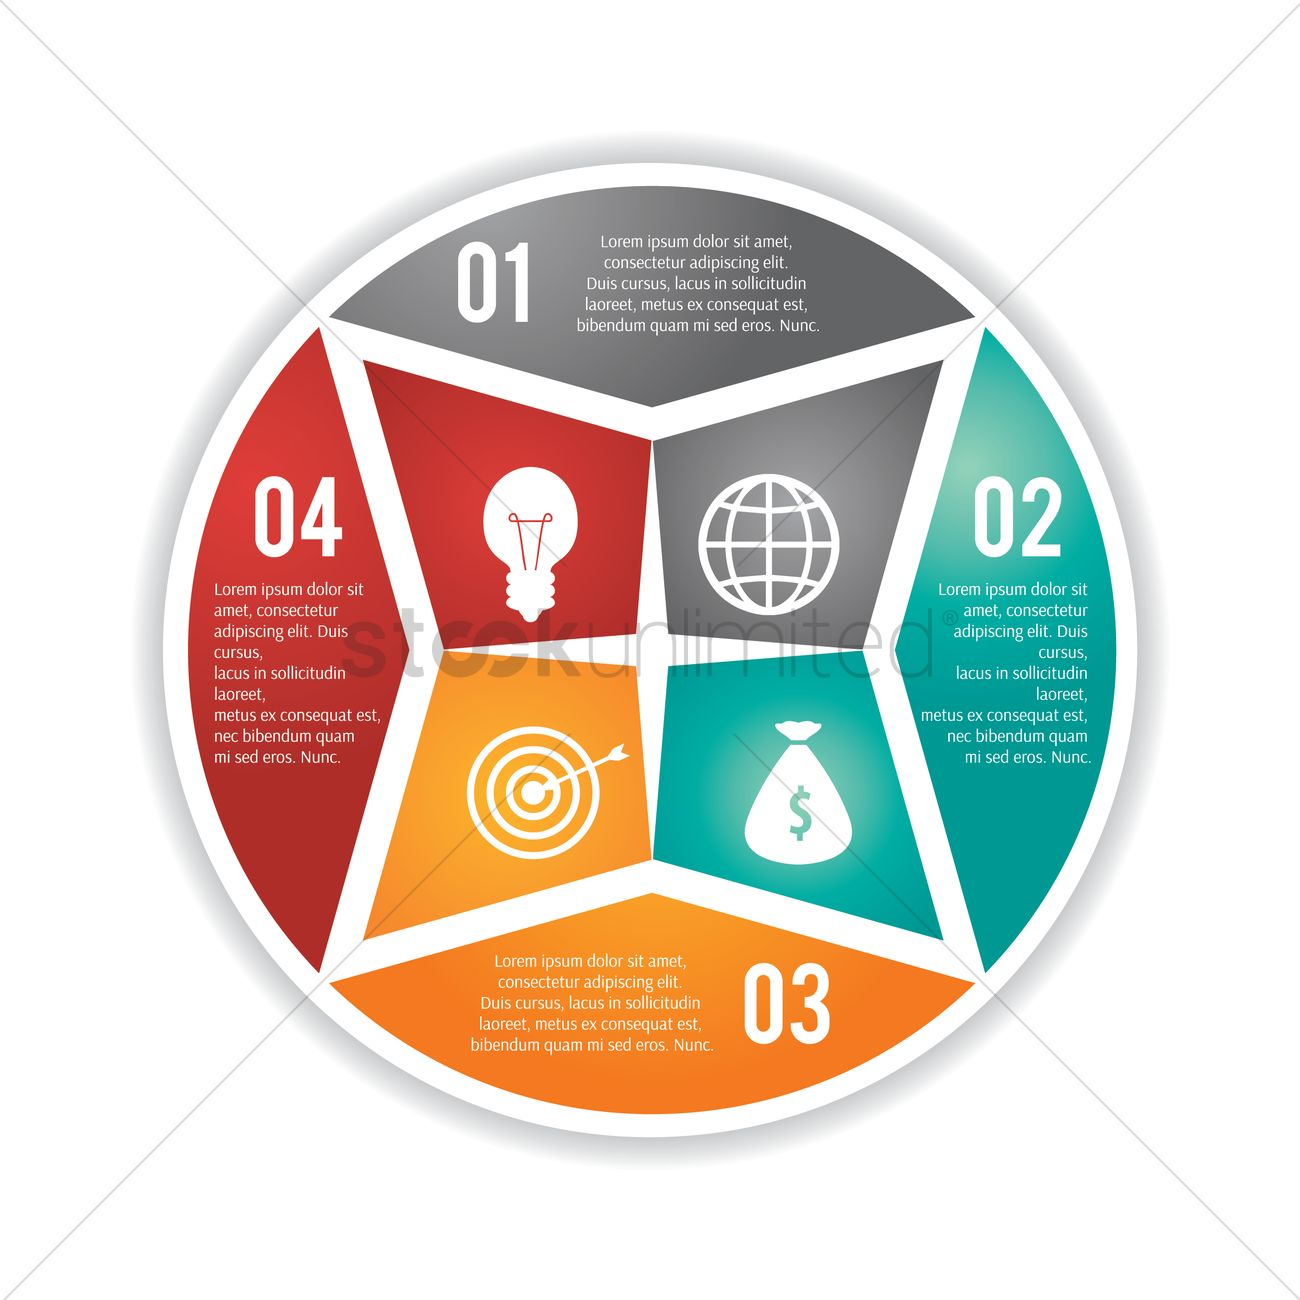 Circle Infographic Flowchart Vector Image 1990597 Stockunlimited